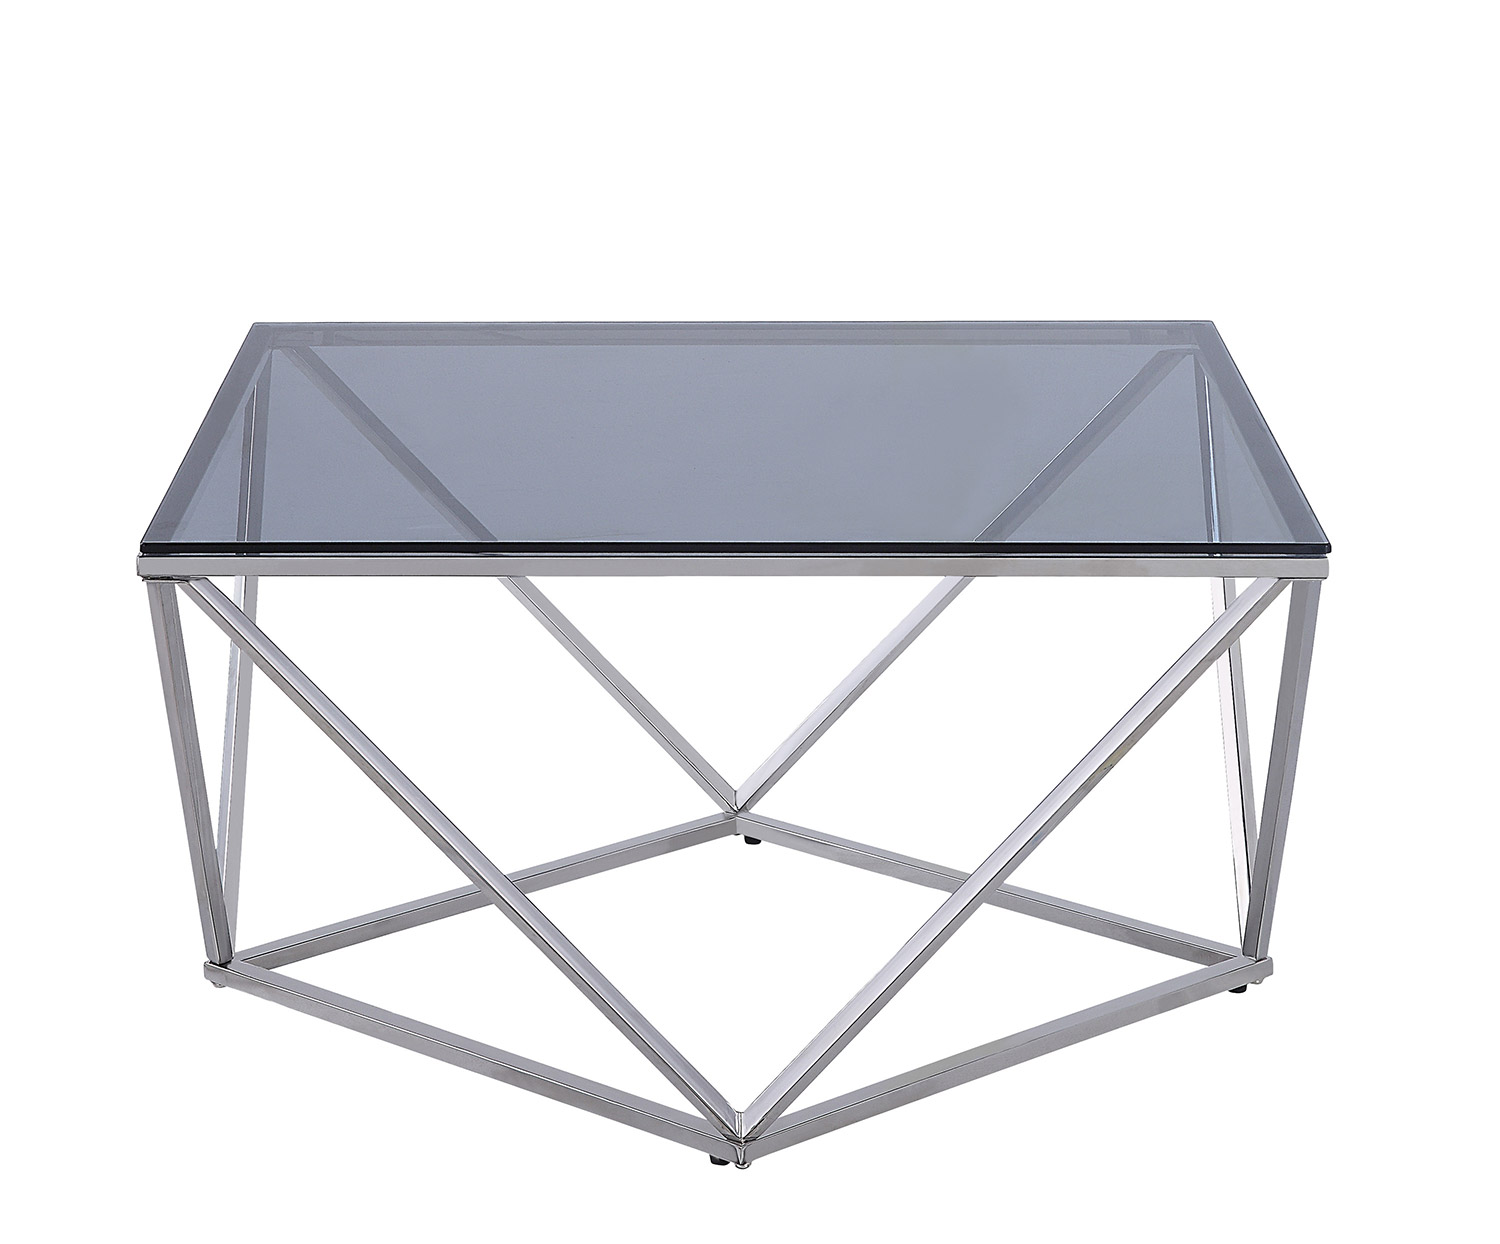 Homelegance Rex Cocktail Table with Gray Glass Insert - Silver